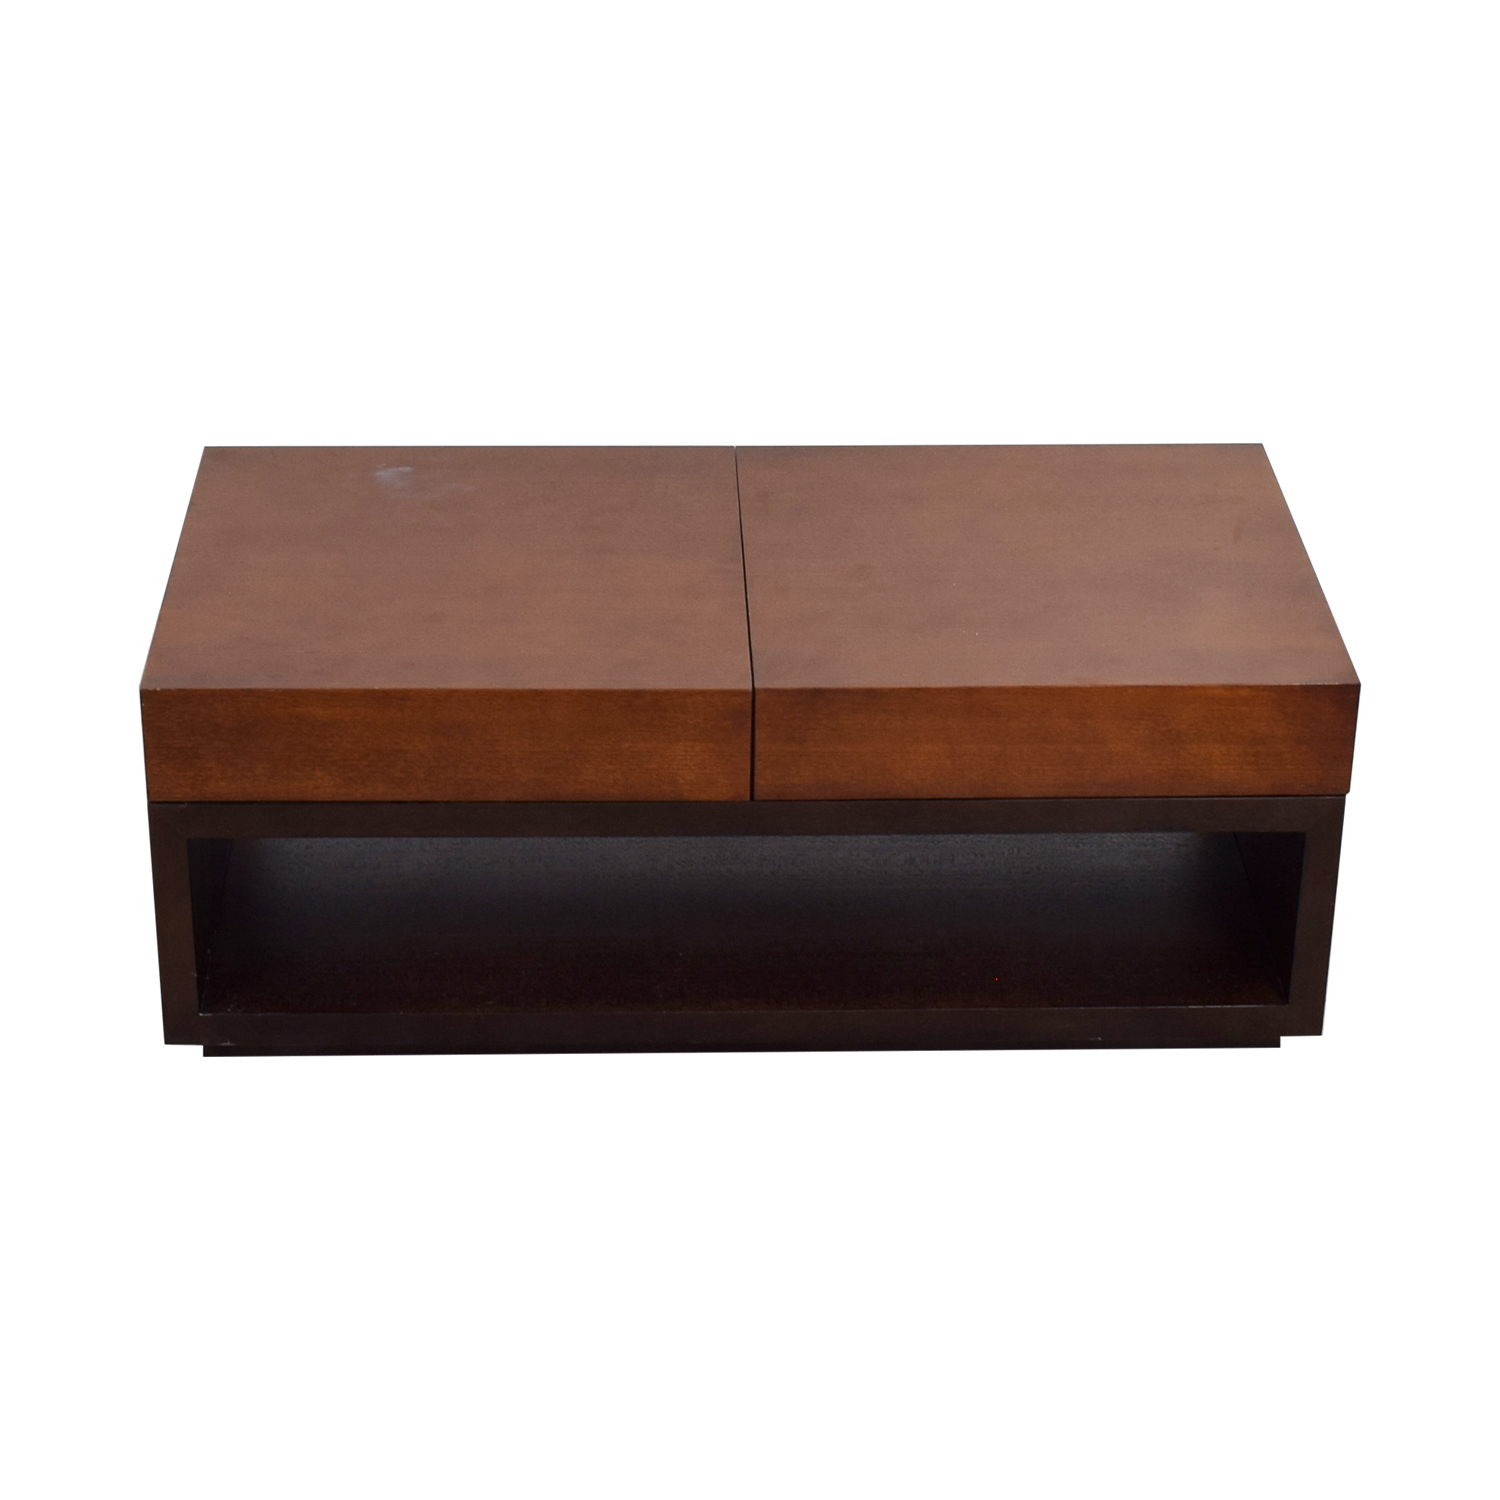 buy Crate & Barrel Crate & Barrel Trax Coffee Table online